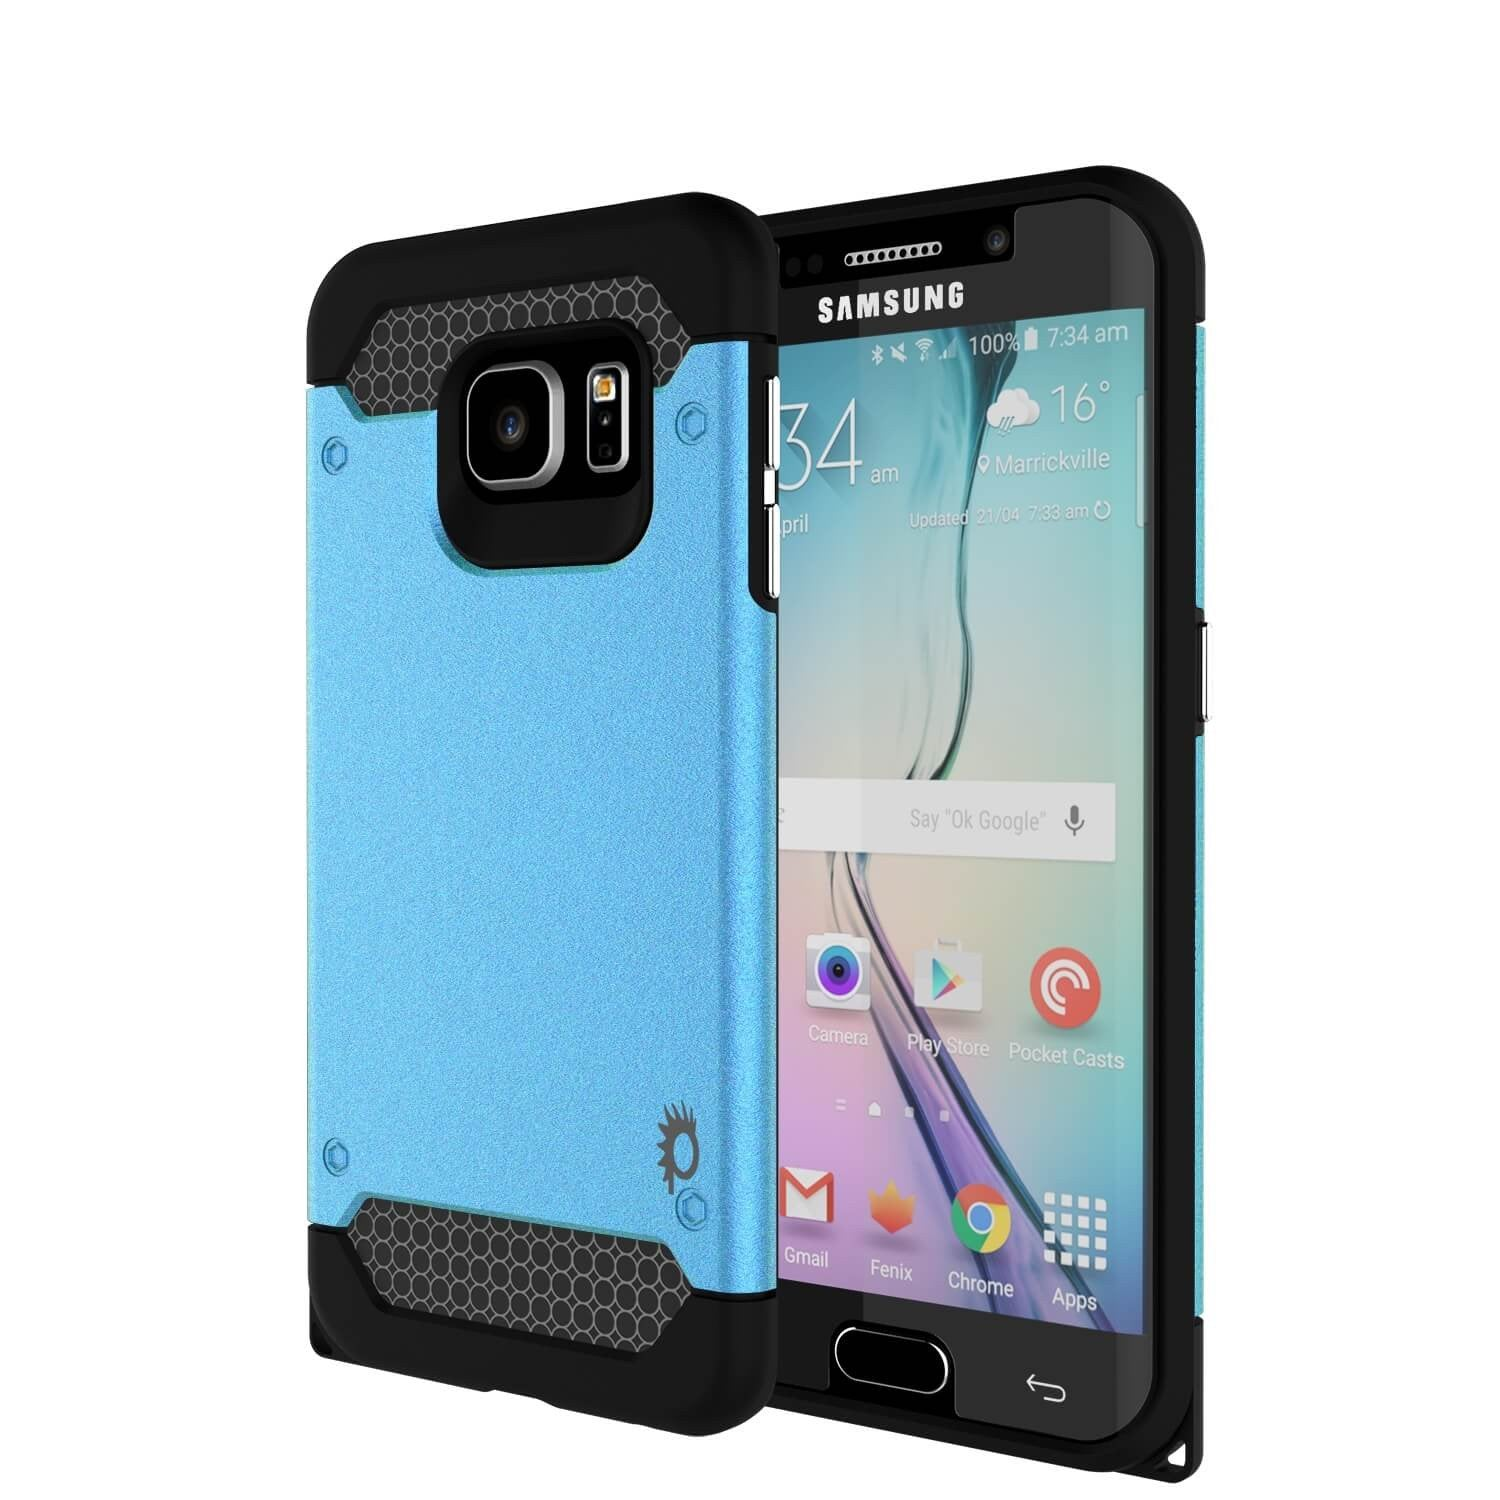 Galaxy s6 EDGE Plus Case PunkCase Galactic Teal Series Slim Armor Soft Cover w/ Screen Protector